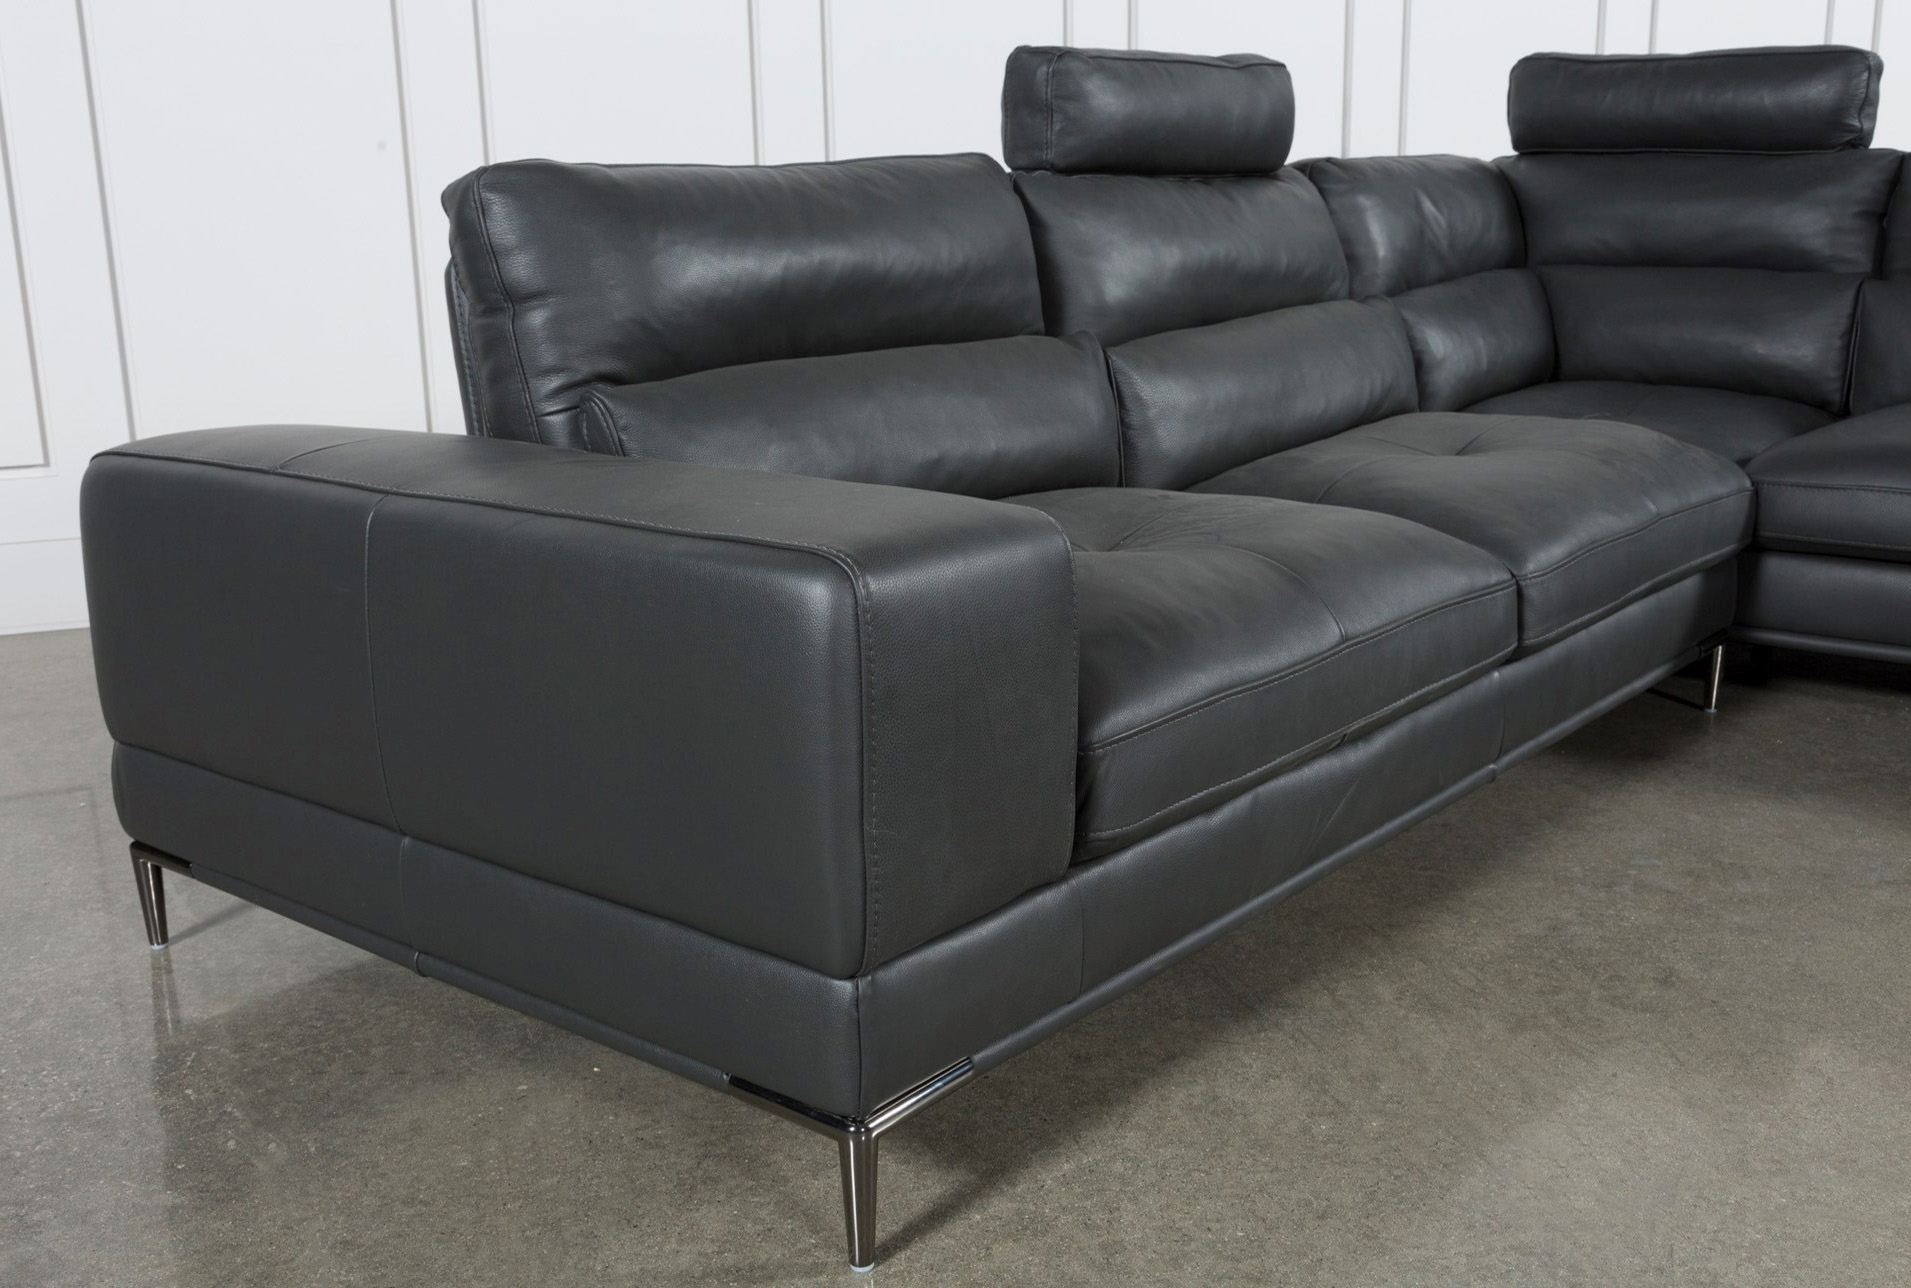 Tenny Dark Grey 2 Piece Right Facing Chaise Sectional W/2 Headrest For Tenny Dark Grey 2 Piece Left Facing Chaise Sectionals With 2 Headrest (View 3 of 25)